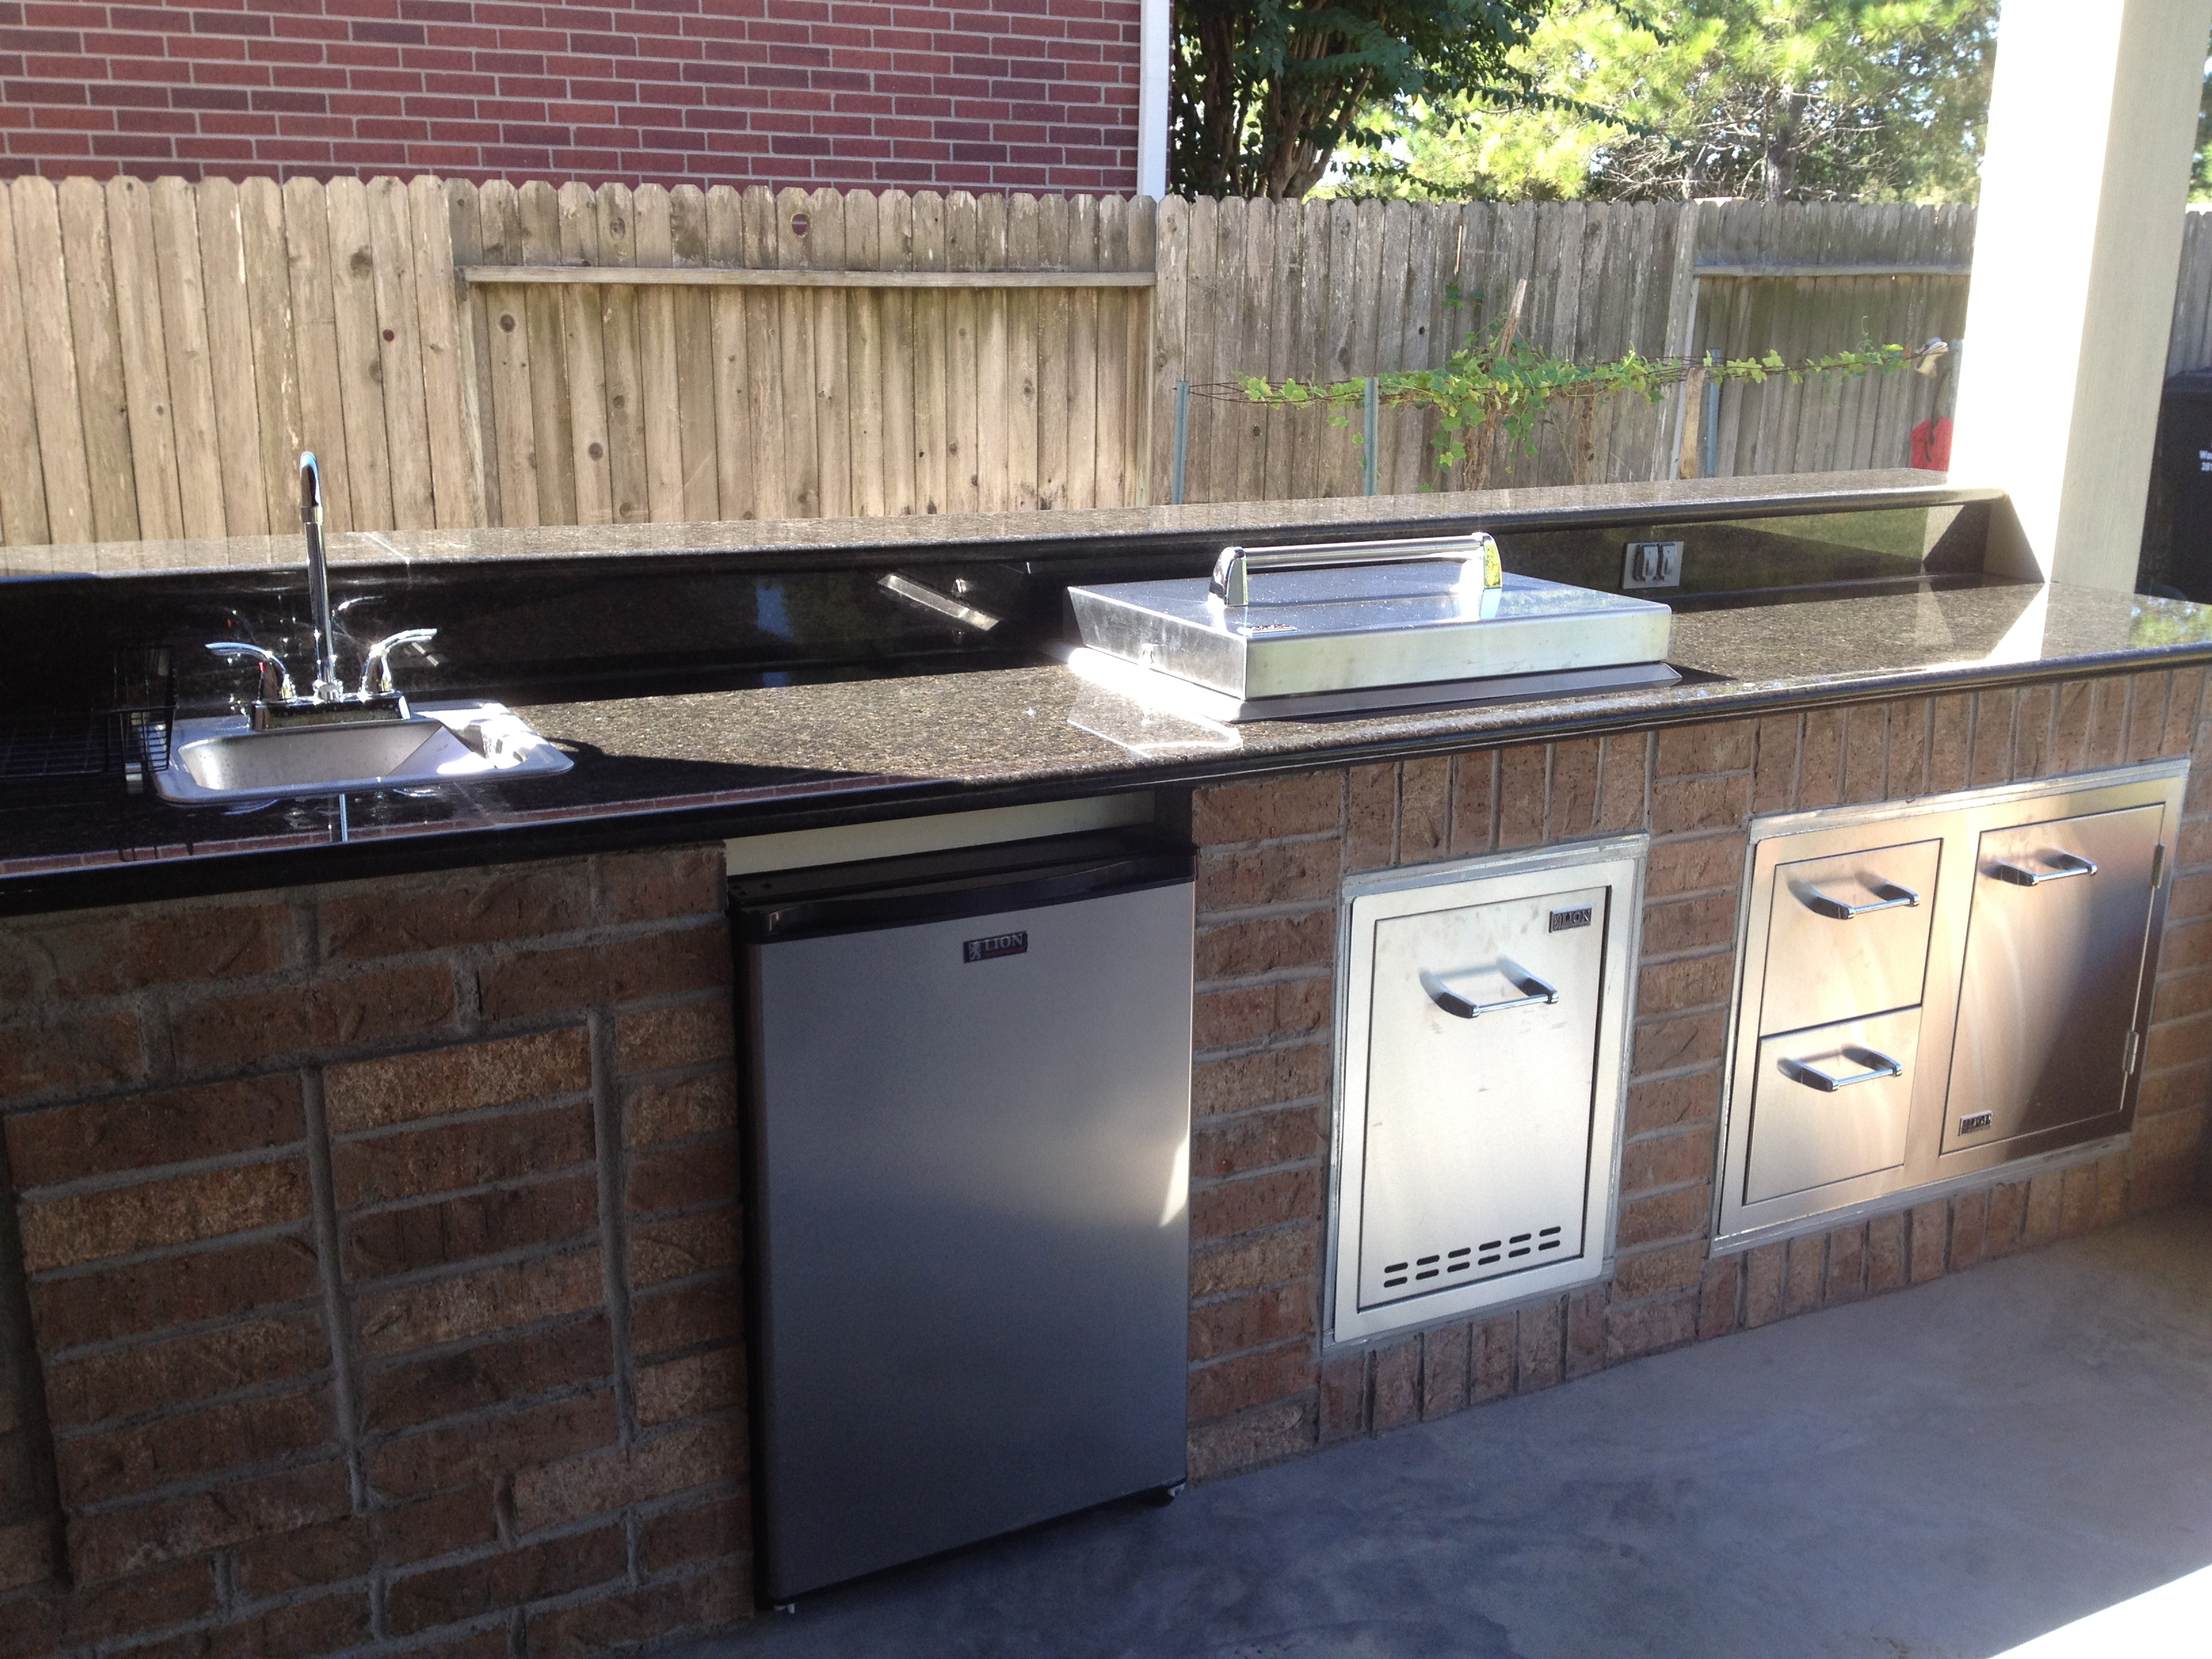 vimal-patel-outdoor-kitchen-complete-up-close